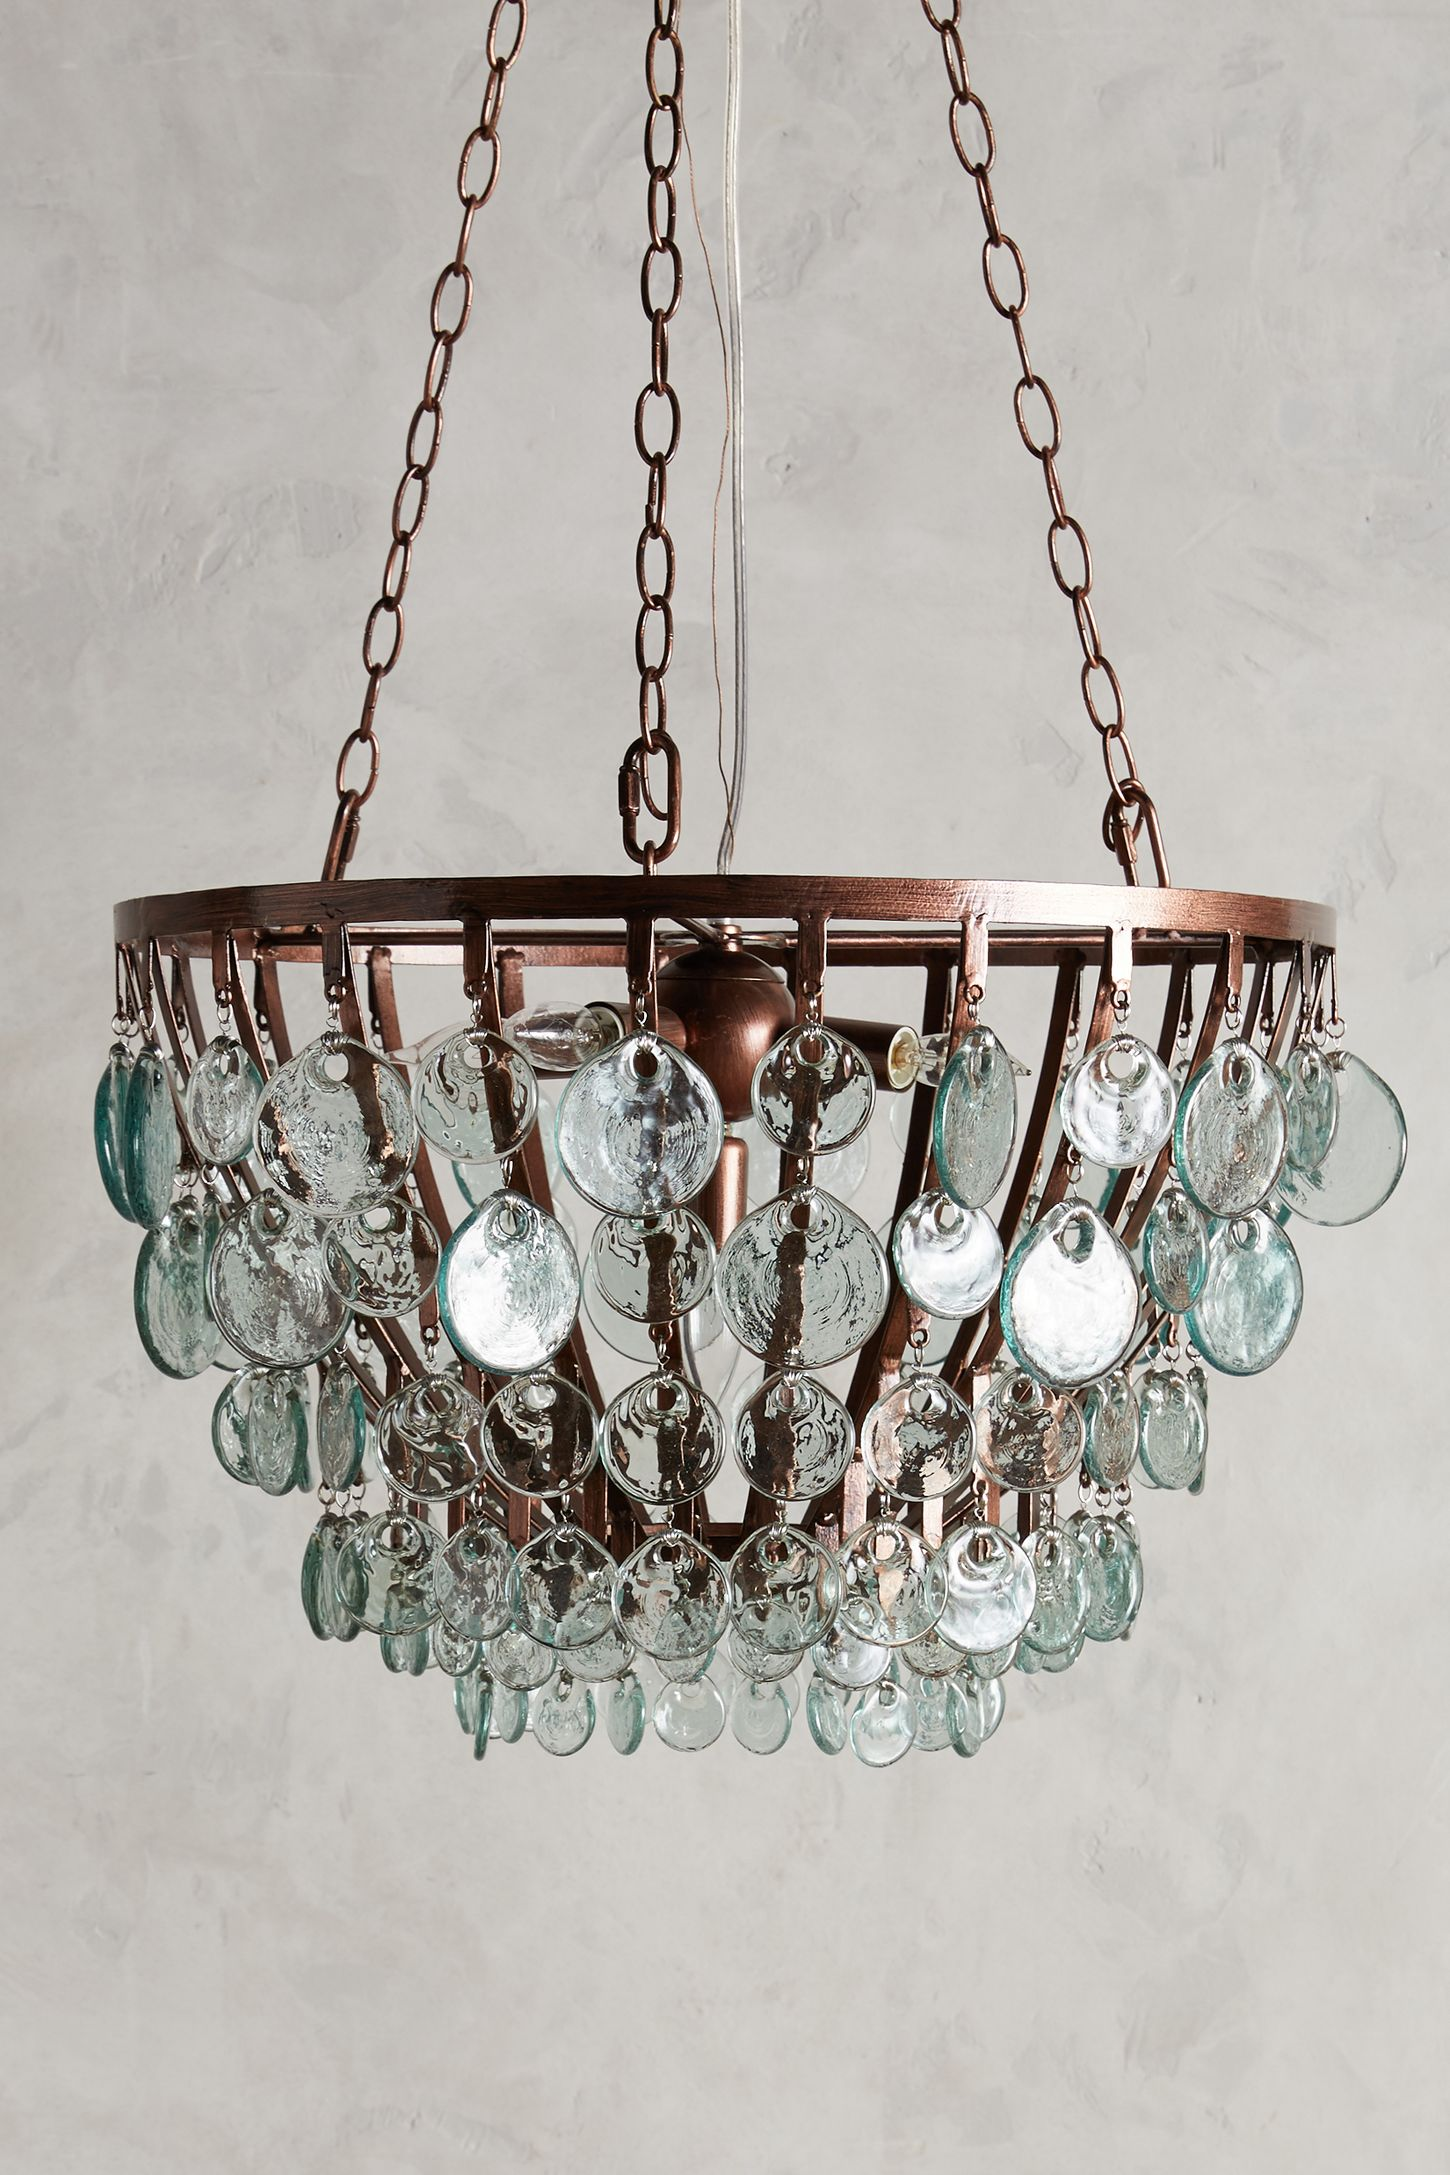 Teacup chandelier anthropologie chandelier designs teacup chandelier anthropologie designs arubaitofo Choice Image